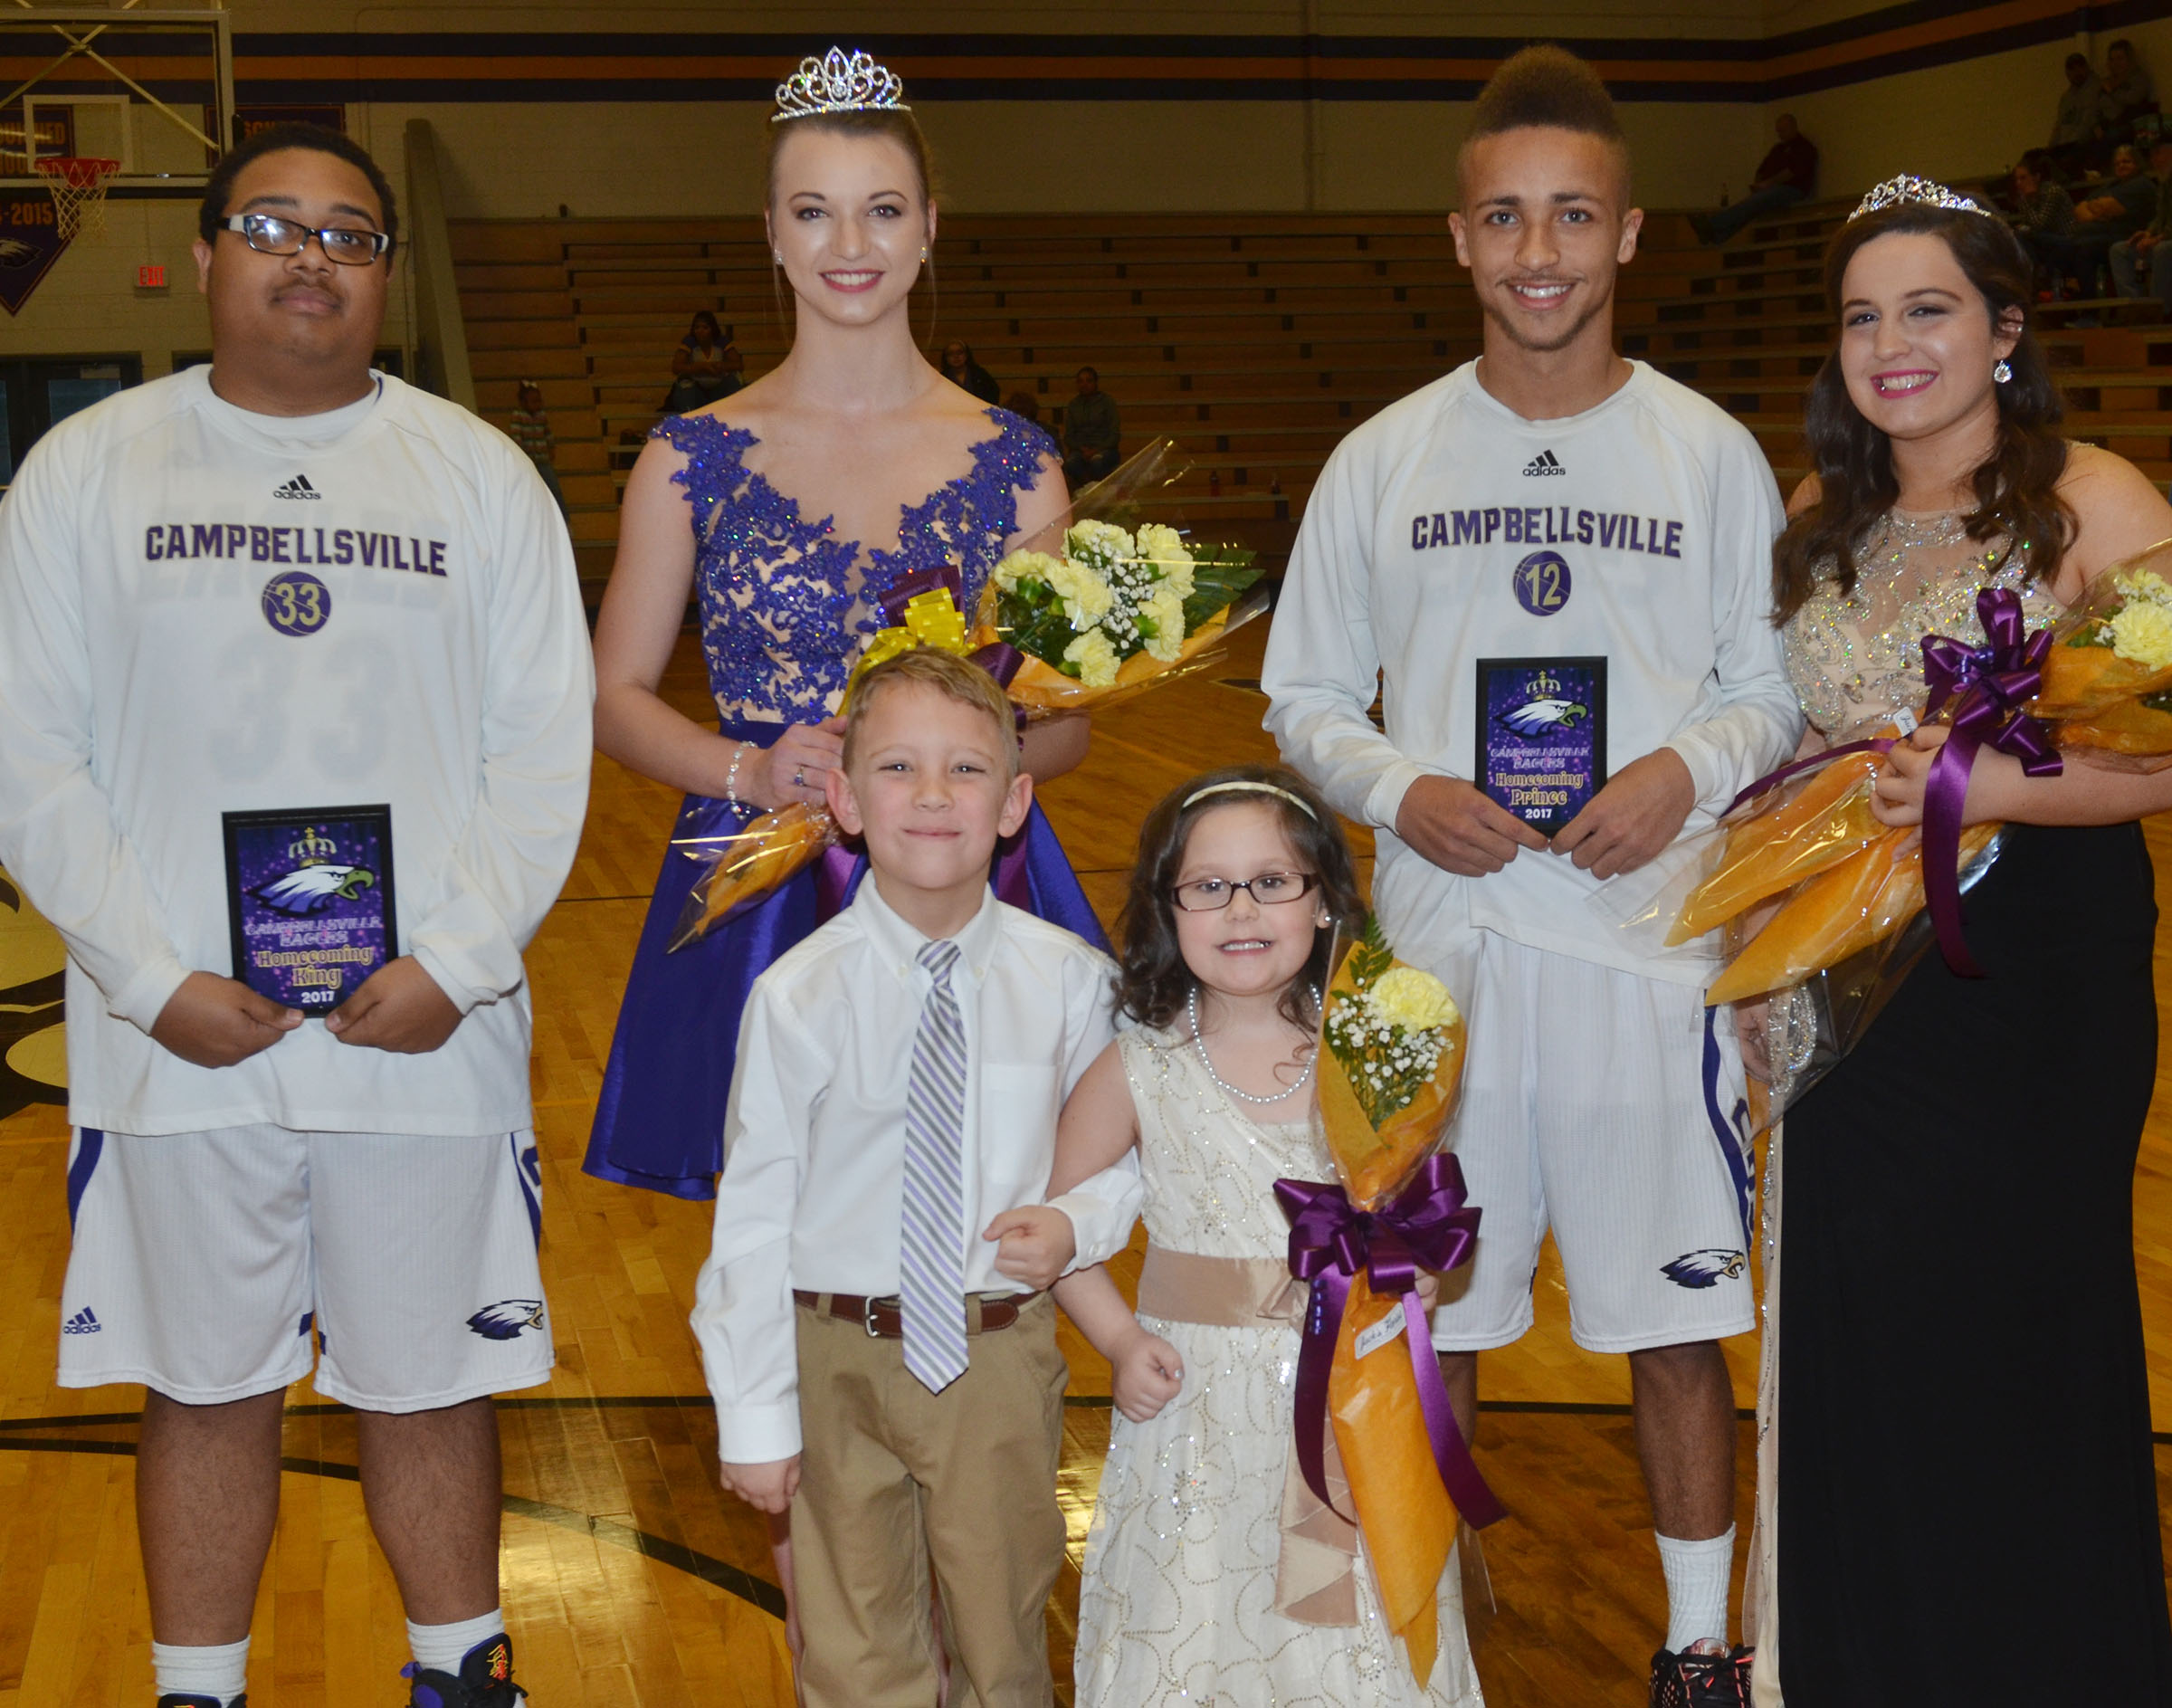 CHS seniors Ricky Smith-Cecil and Caylie Blair, at left, were named this year's basketball homecoming king and queen. Ethan Lay and Caitlin Bright, representing the junior class, at right, were named prince and princess. Campbellsville Elementary School first-grader Gabe Prior and kindergartener Trinity Clark were the crown bearers.